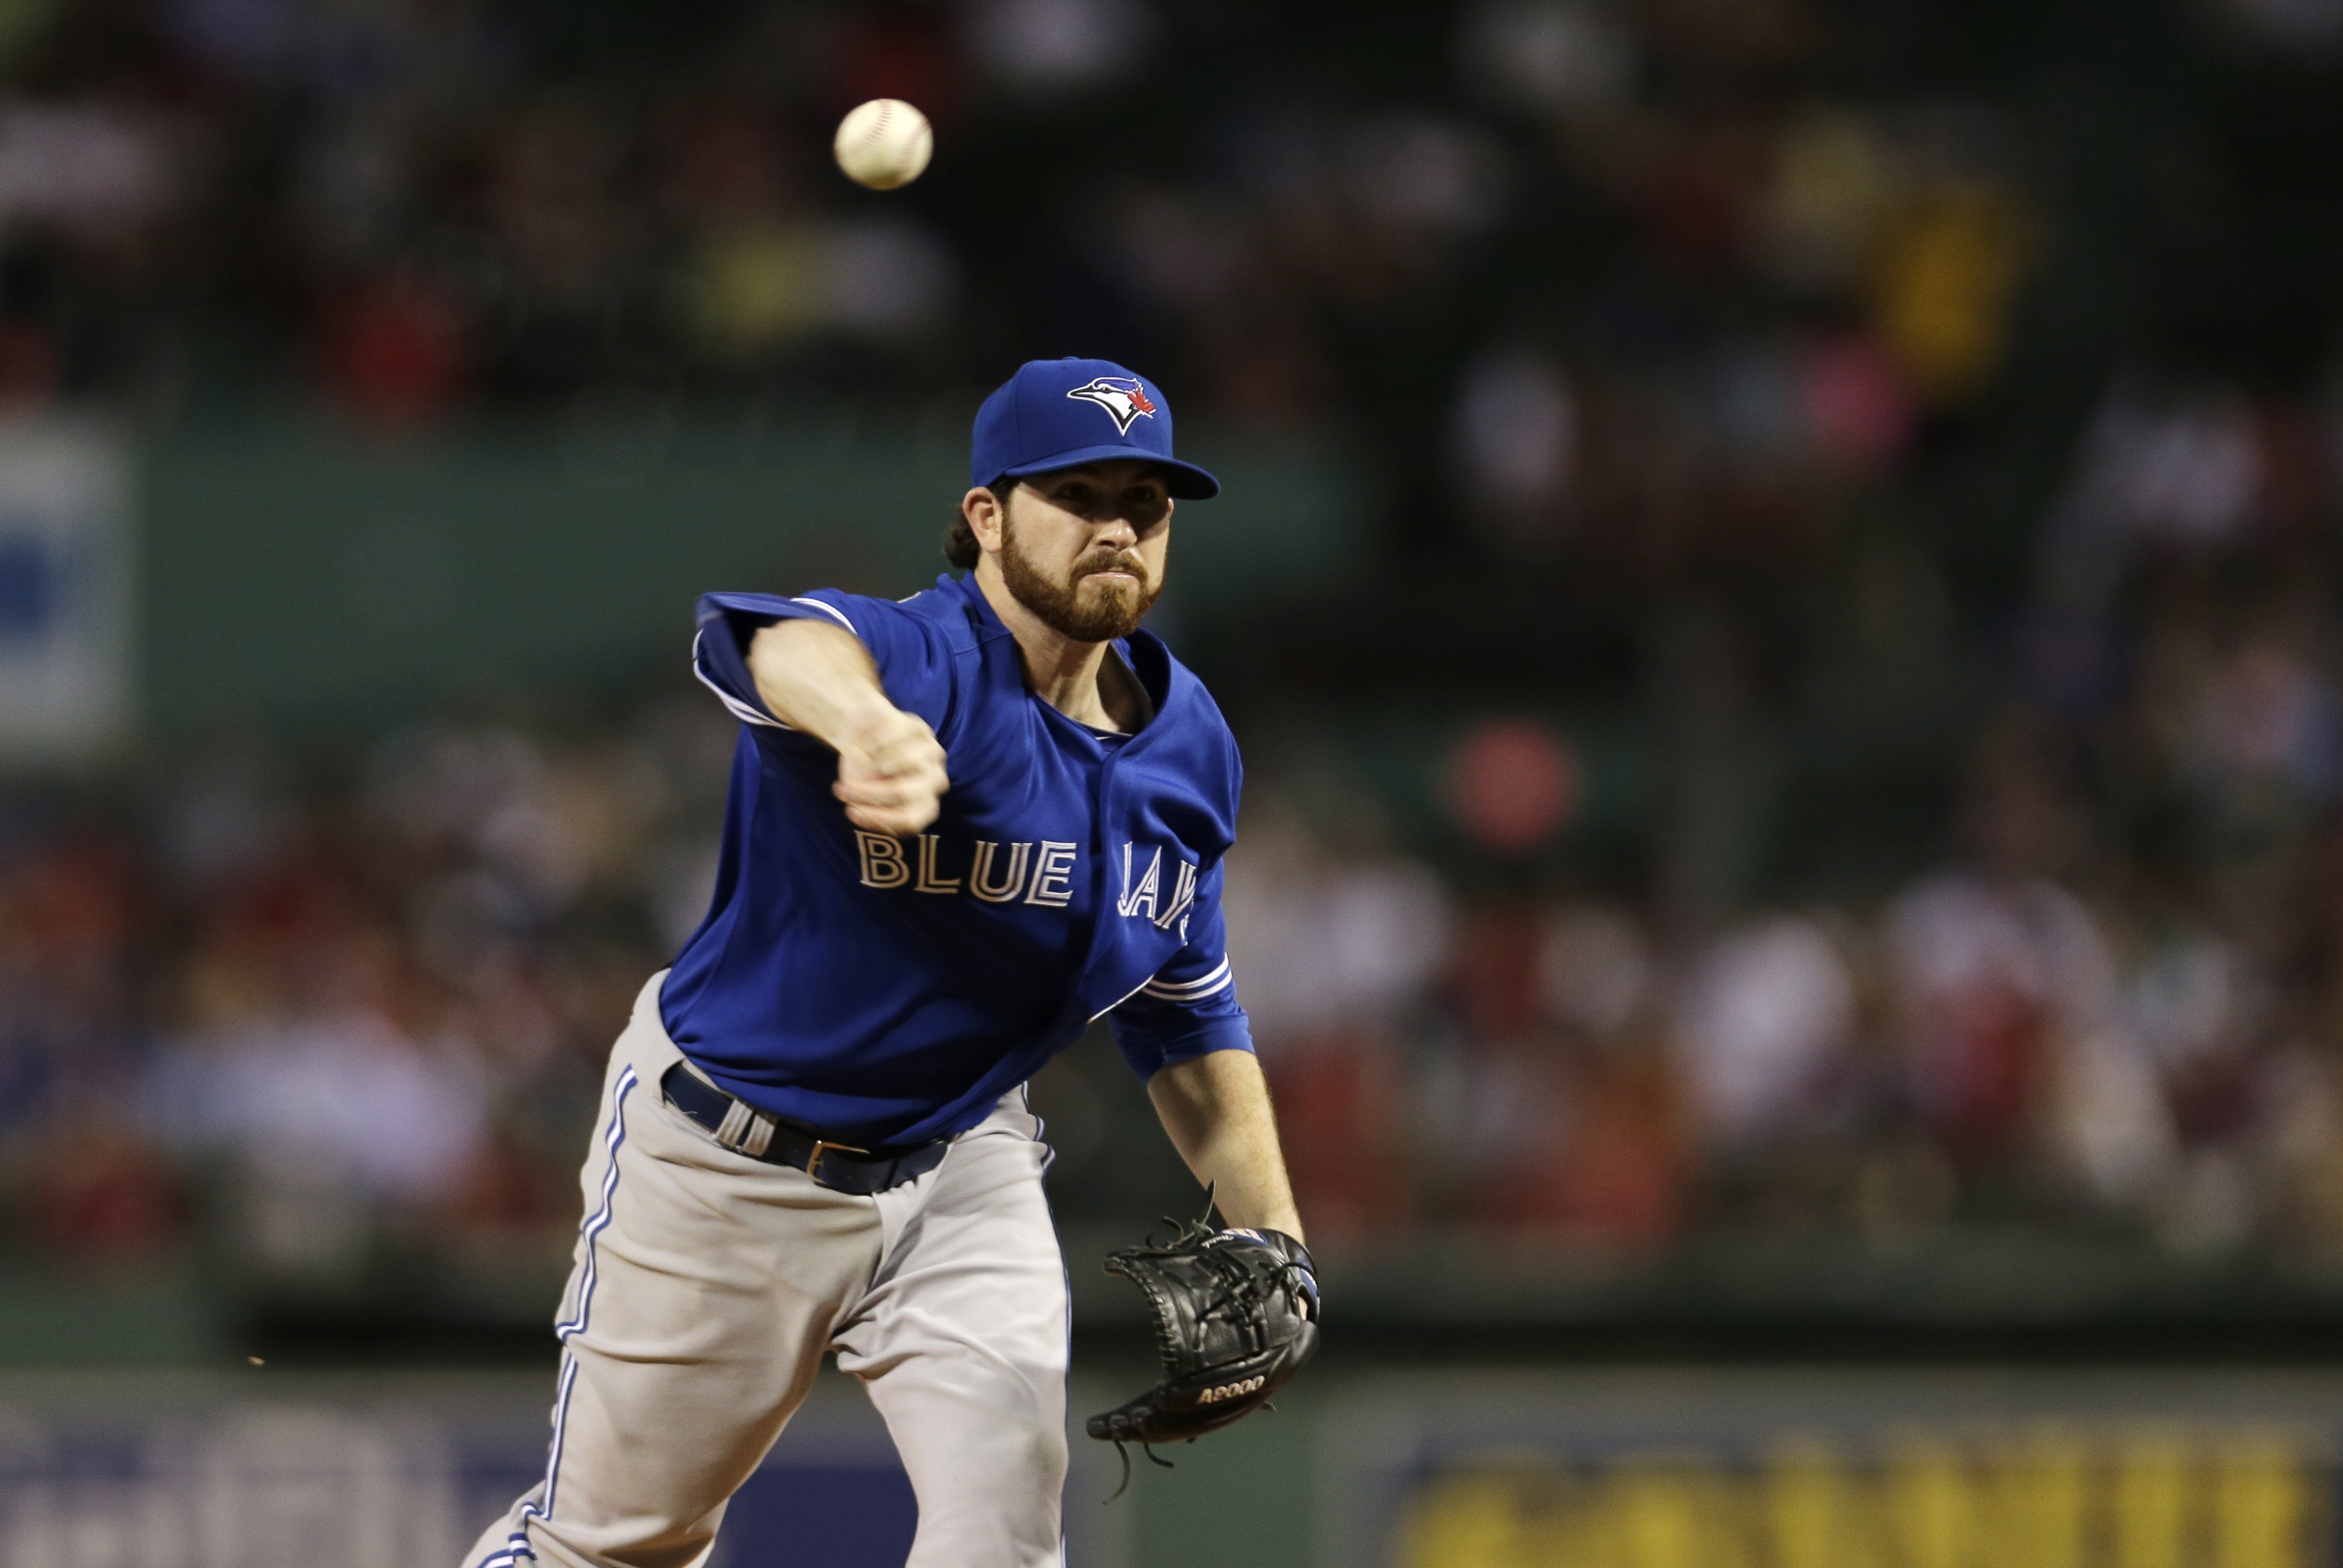 Toronto Blue Jays starting pitcher Drew Hutchison delivers during the first inning of a baseball game at Fenway Park in Boston, Wednesday, Sept. 9, 2015. (AP Photo/Charles Krupa)